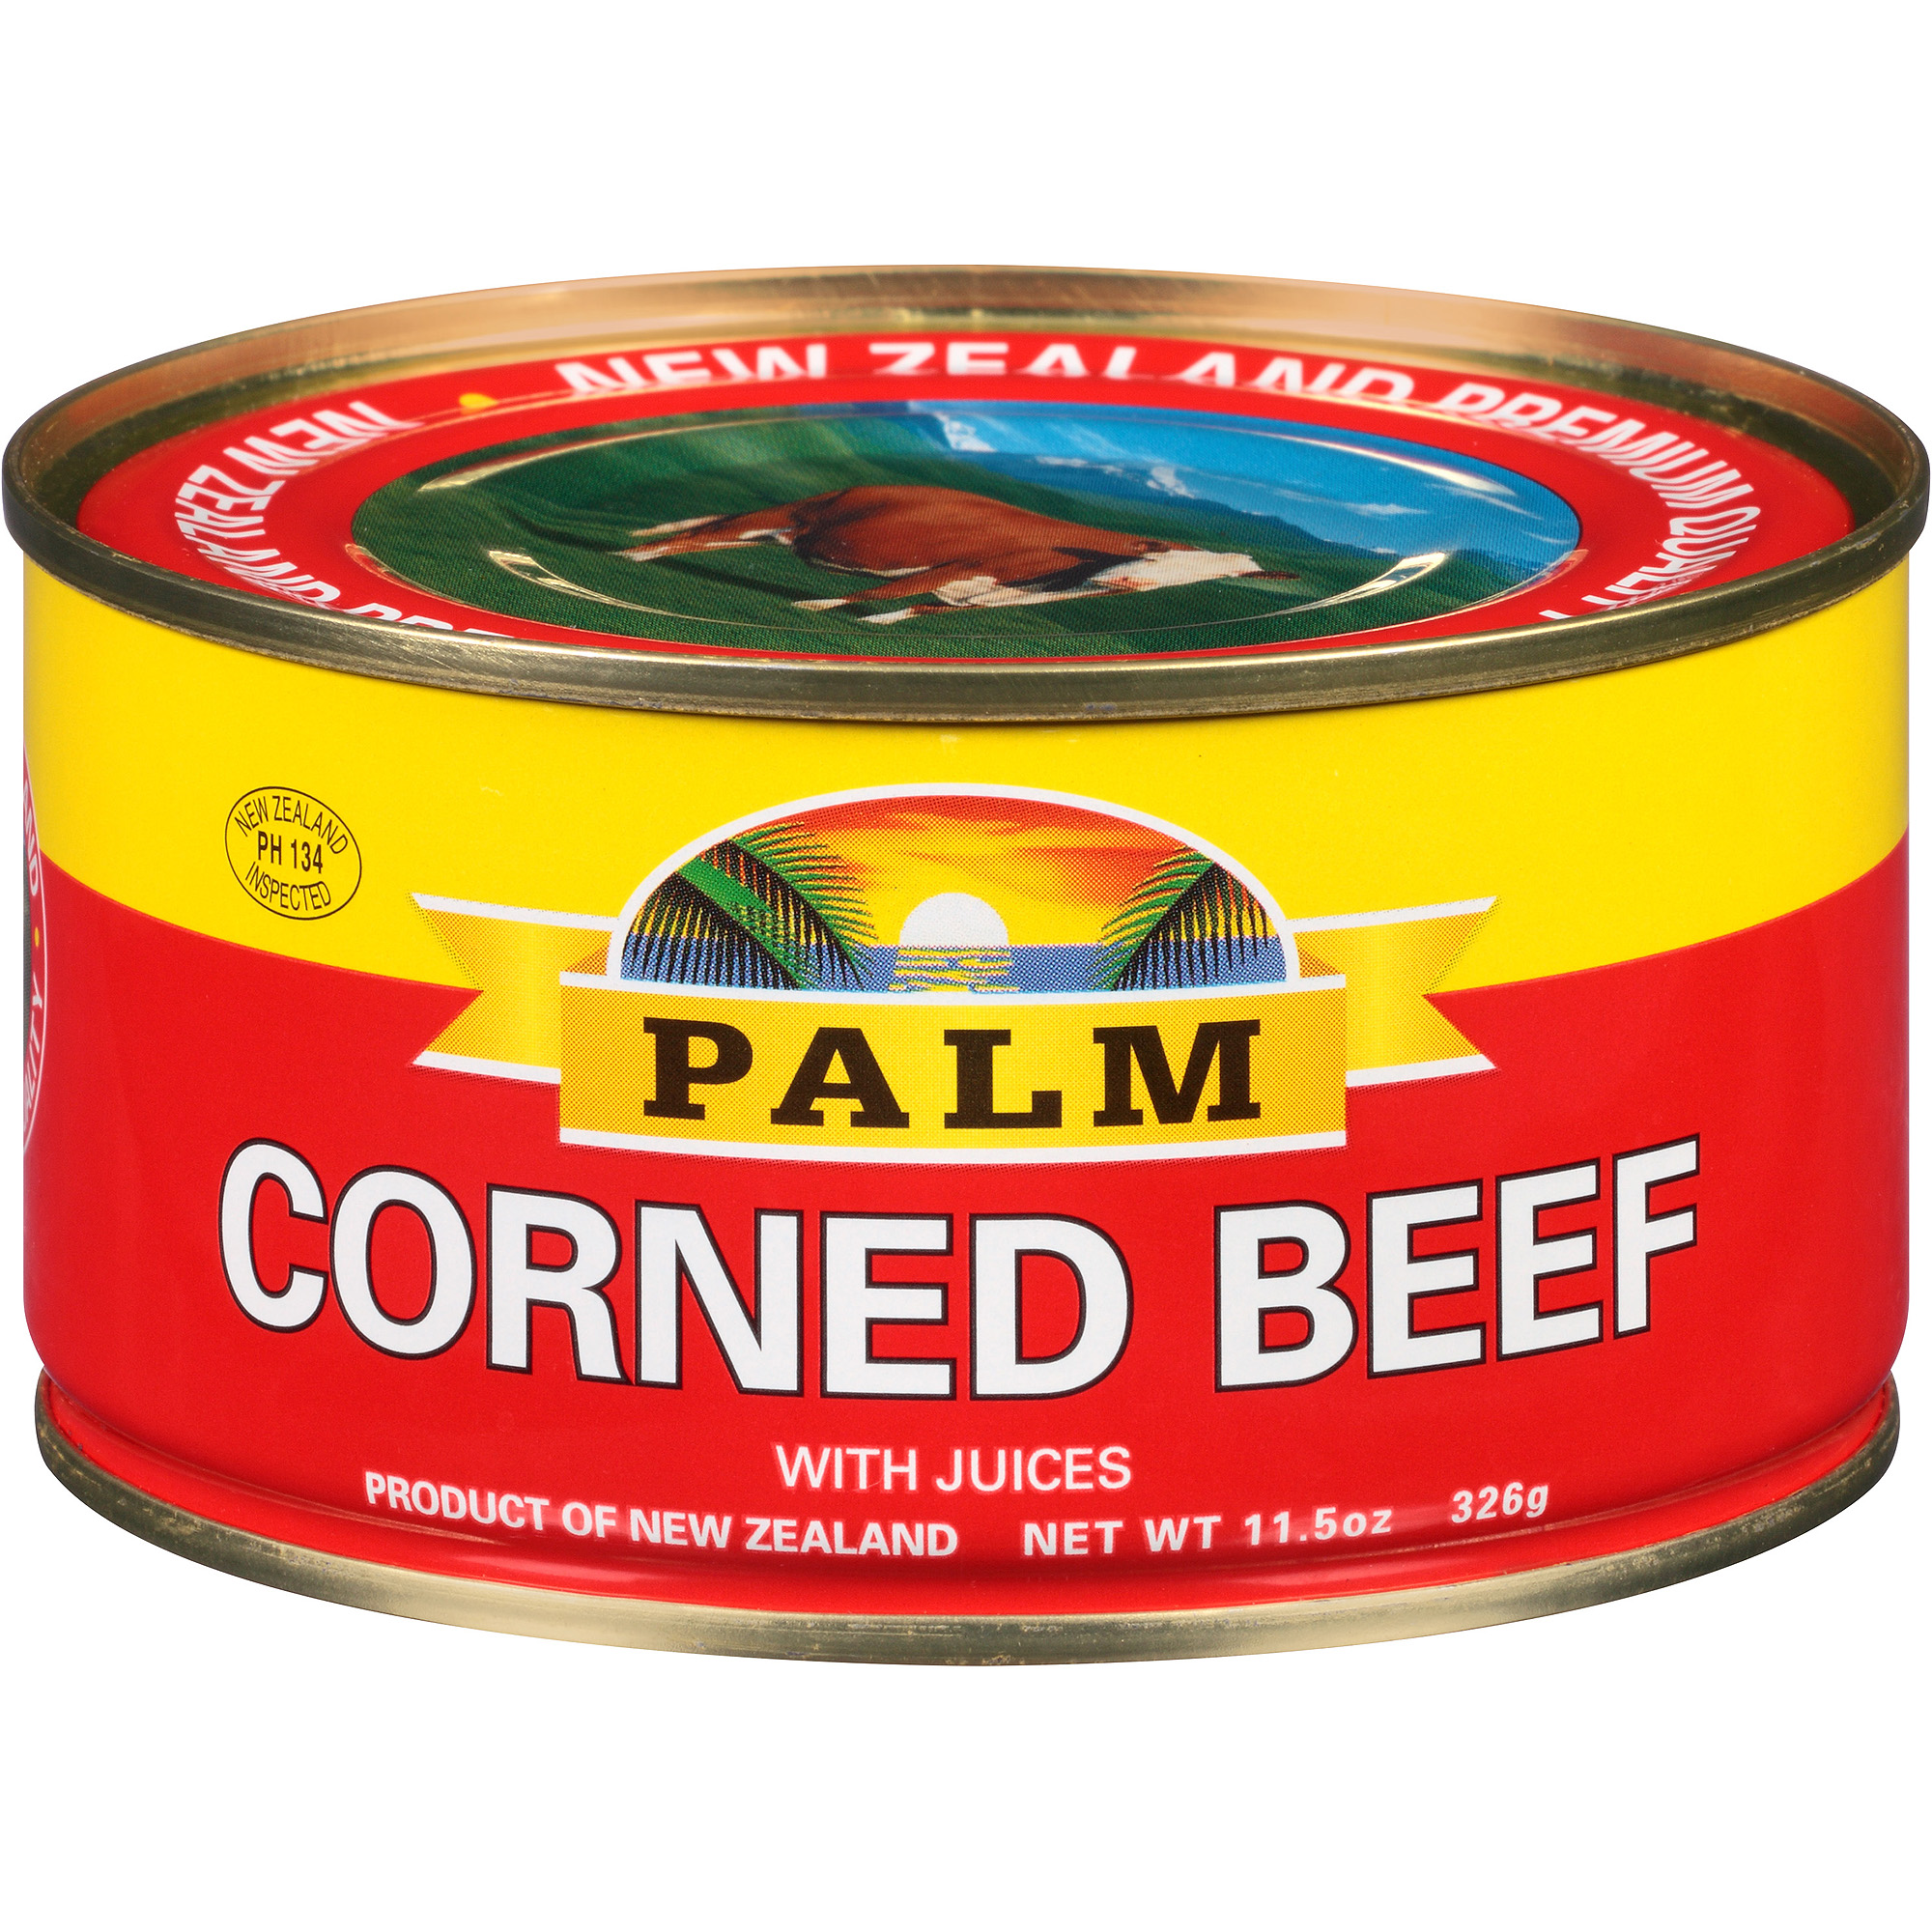 Palm Corned Beef with Juices, 11.5 oz by McCallum Industries